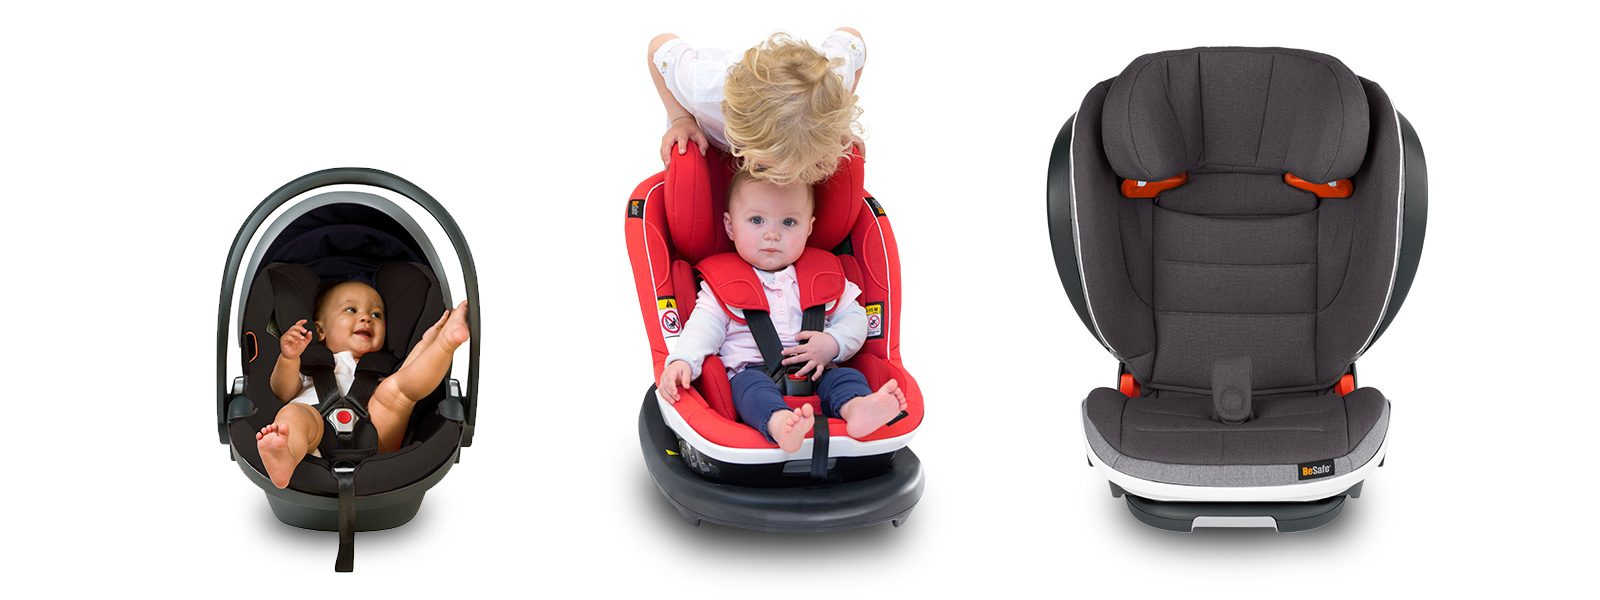 When To Change Car Seats For Children